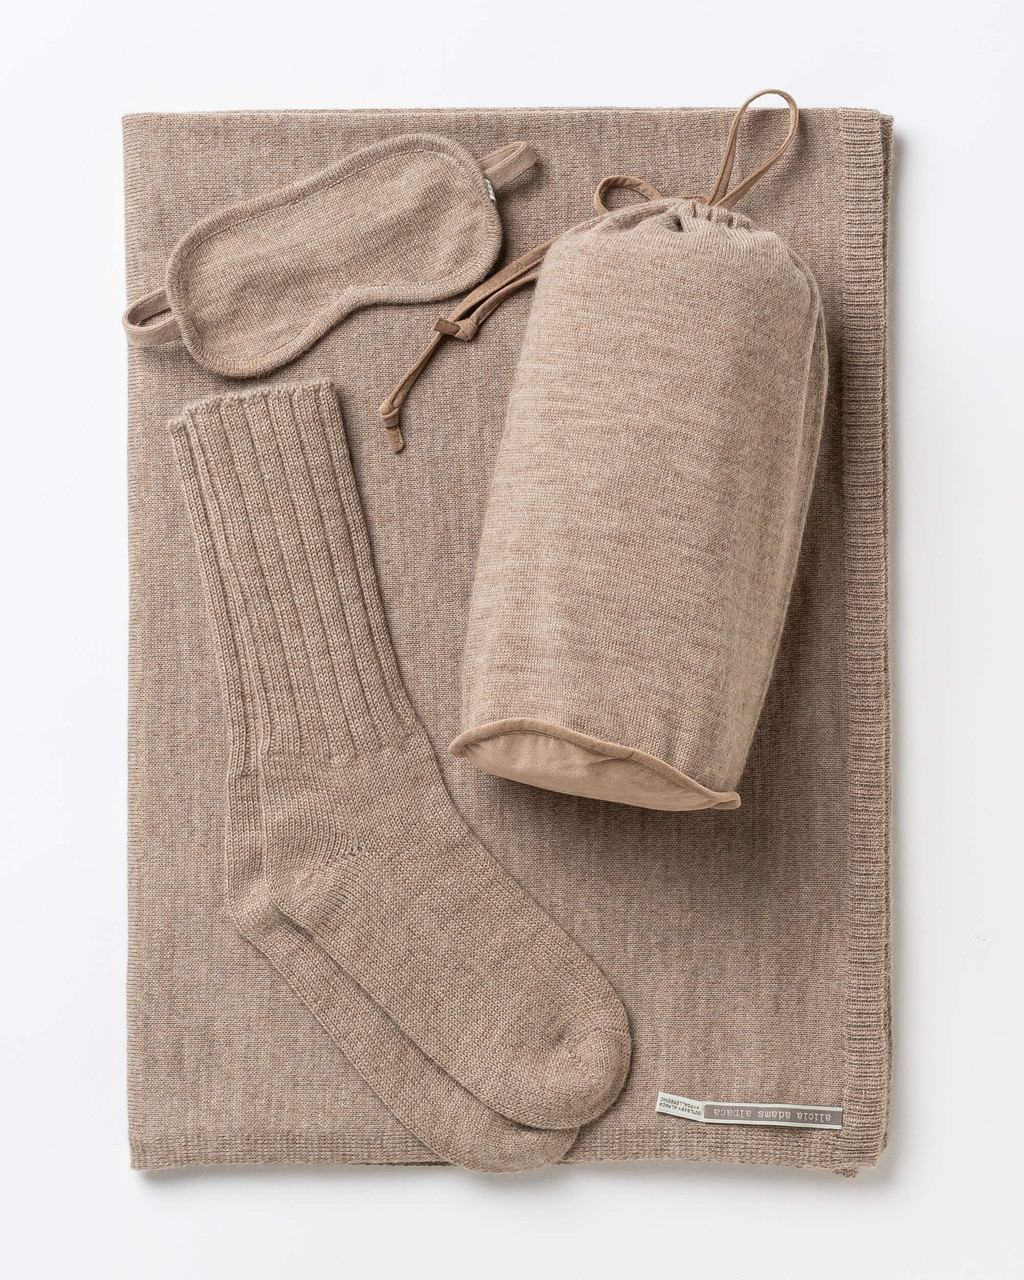 Alicia Adams Alpaca Globetrotter Travel Blanket Set, alpaca socks, alpaca travel blanket, travel kit with blanket and eyemask, light taupe plane travel set